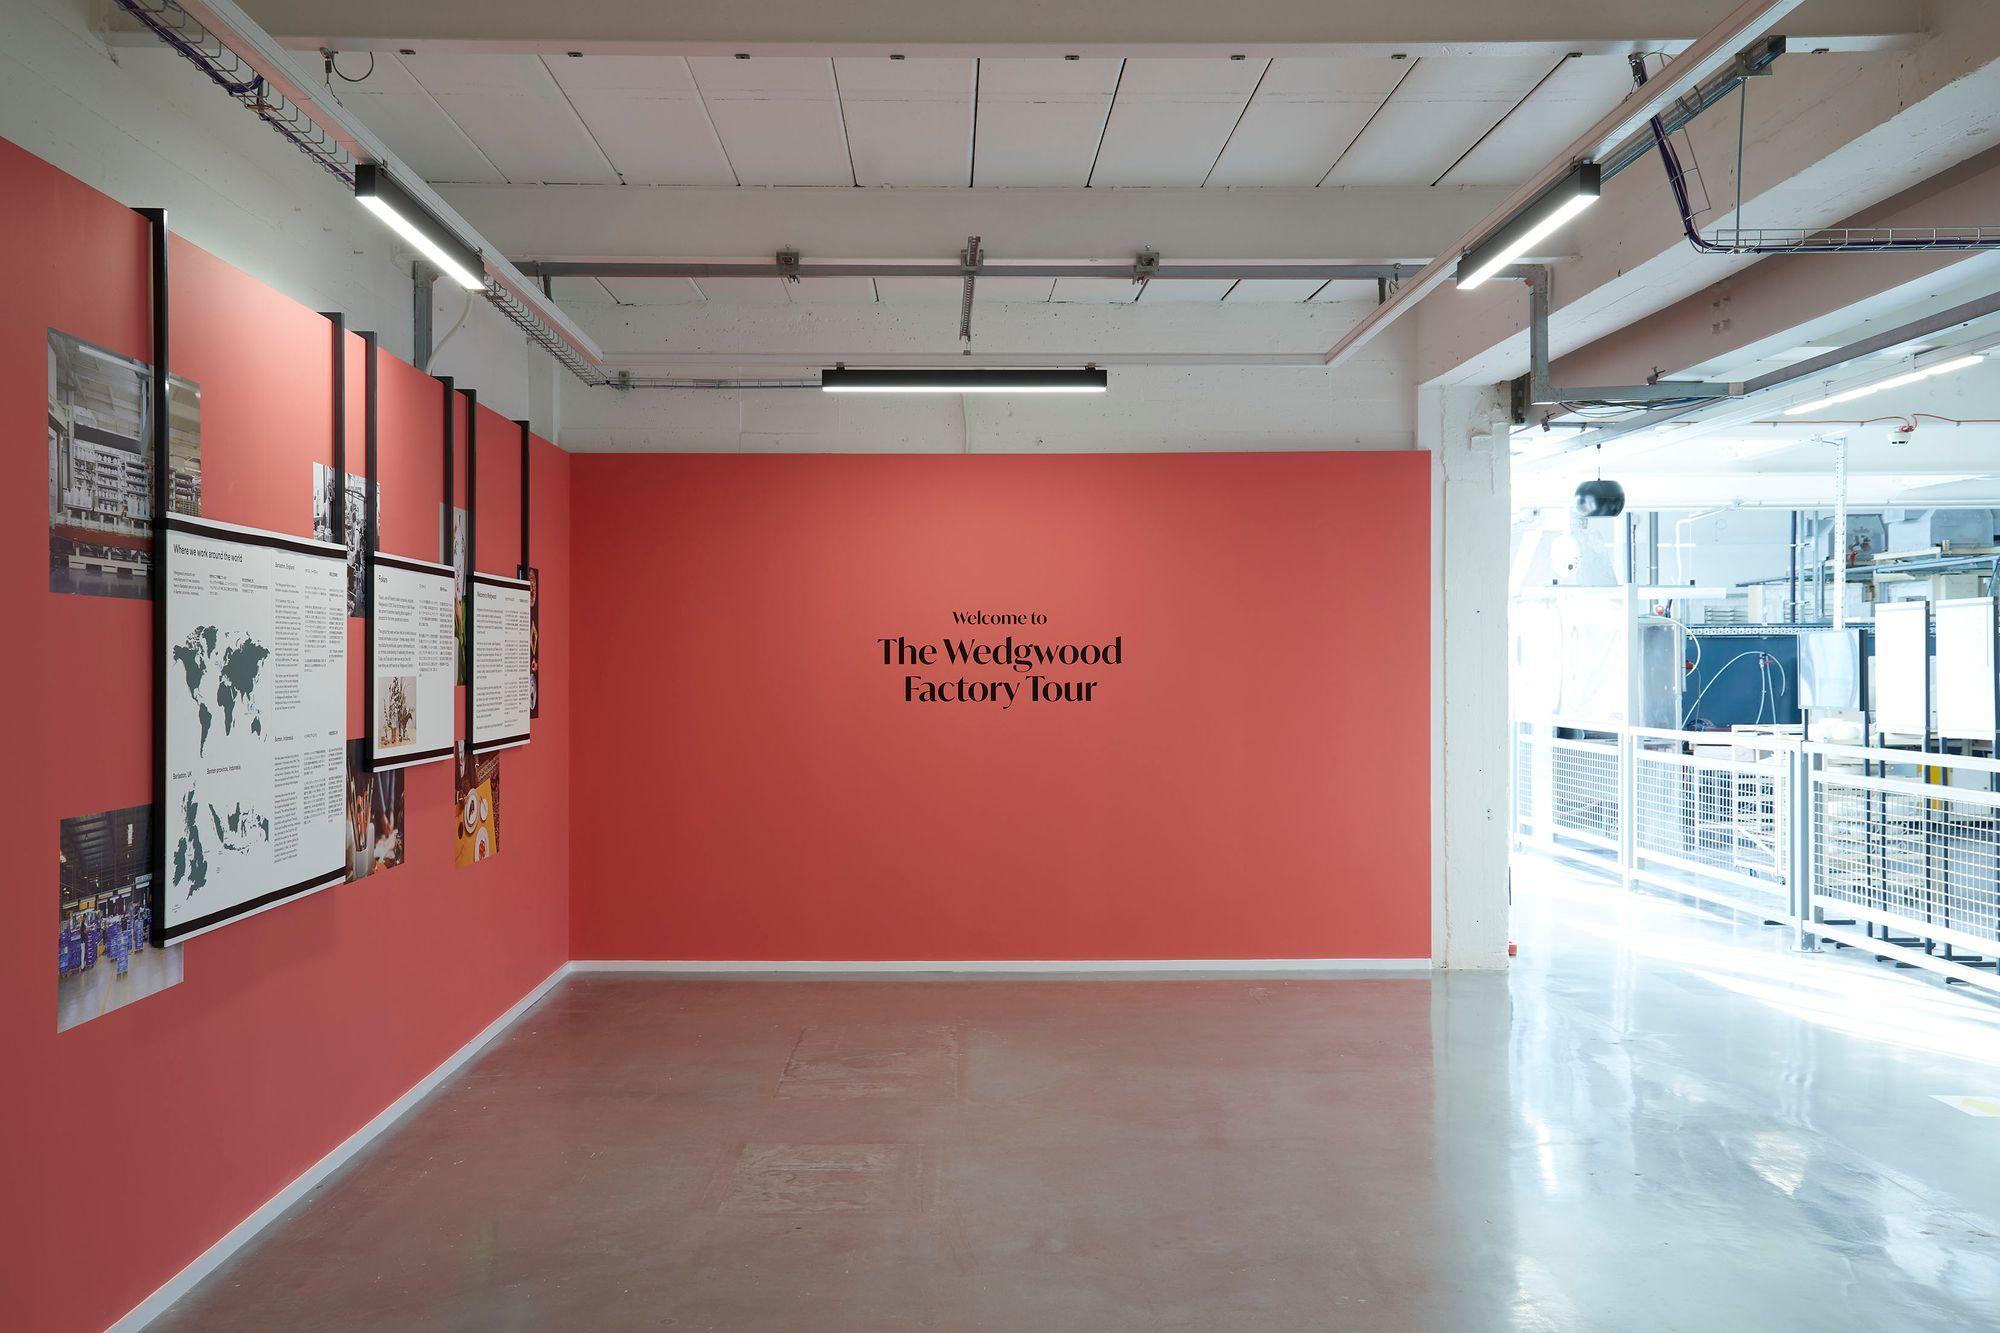 Factory introduction space, title vinyl on red wall and text panels mounted on frames hanging from the ceiling